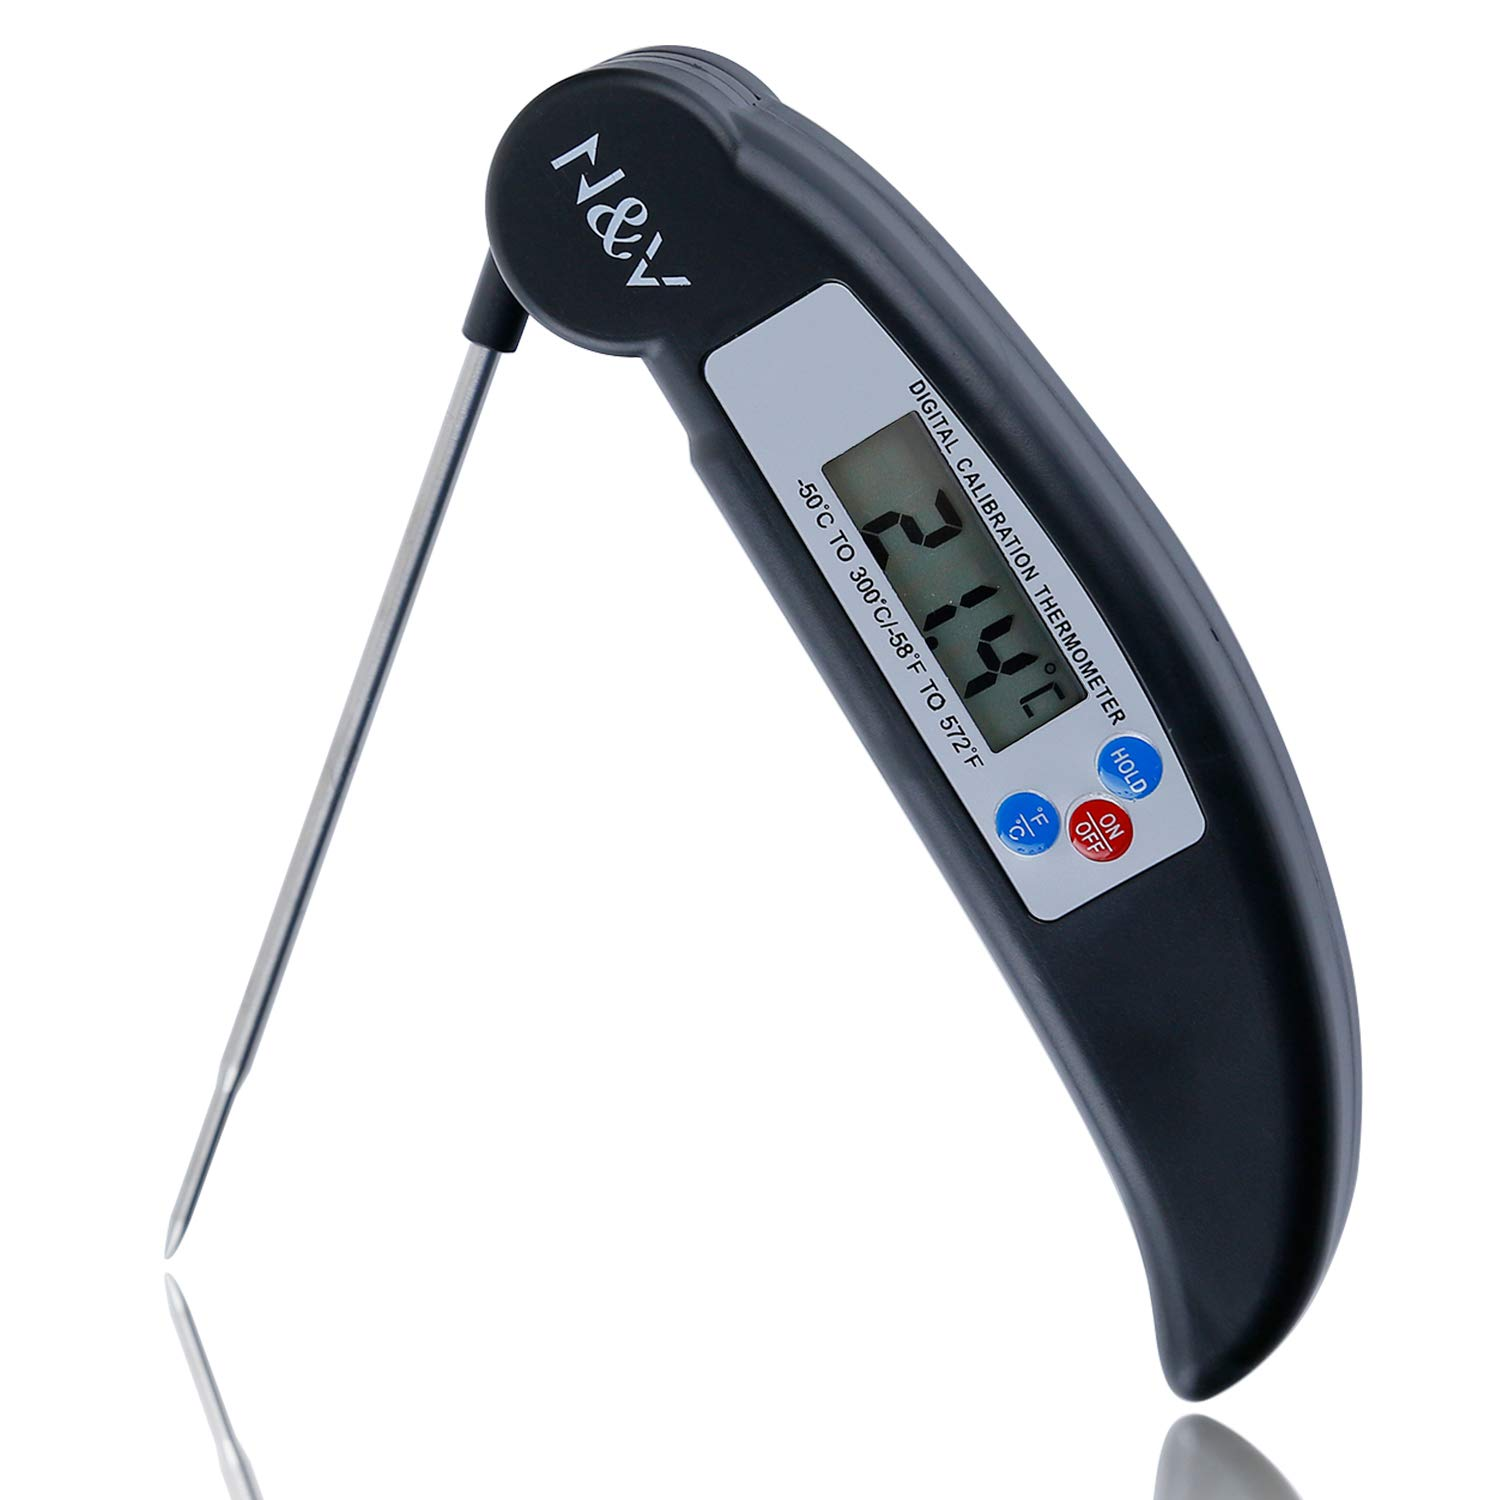 N/&V Meat Thermometer with LCD Display,Instant Read Digital Meat Thermometer for Kitchen,Outdoor,BBQ,Grill Smoker Thermometer,Food Thermomter TEPAC03 black)